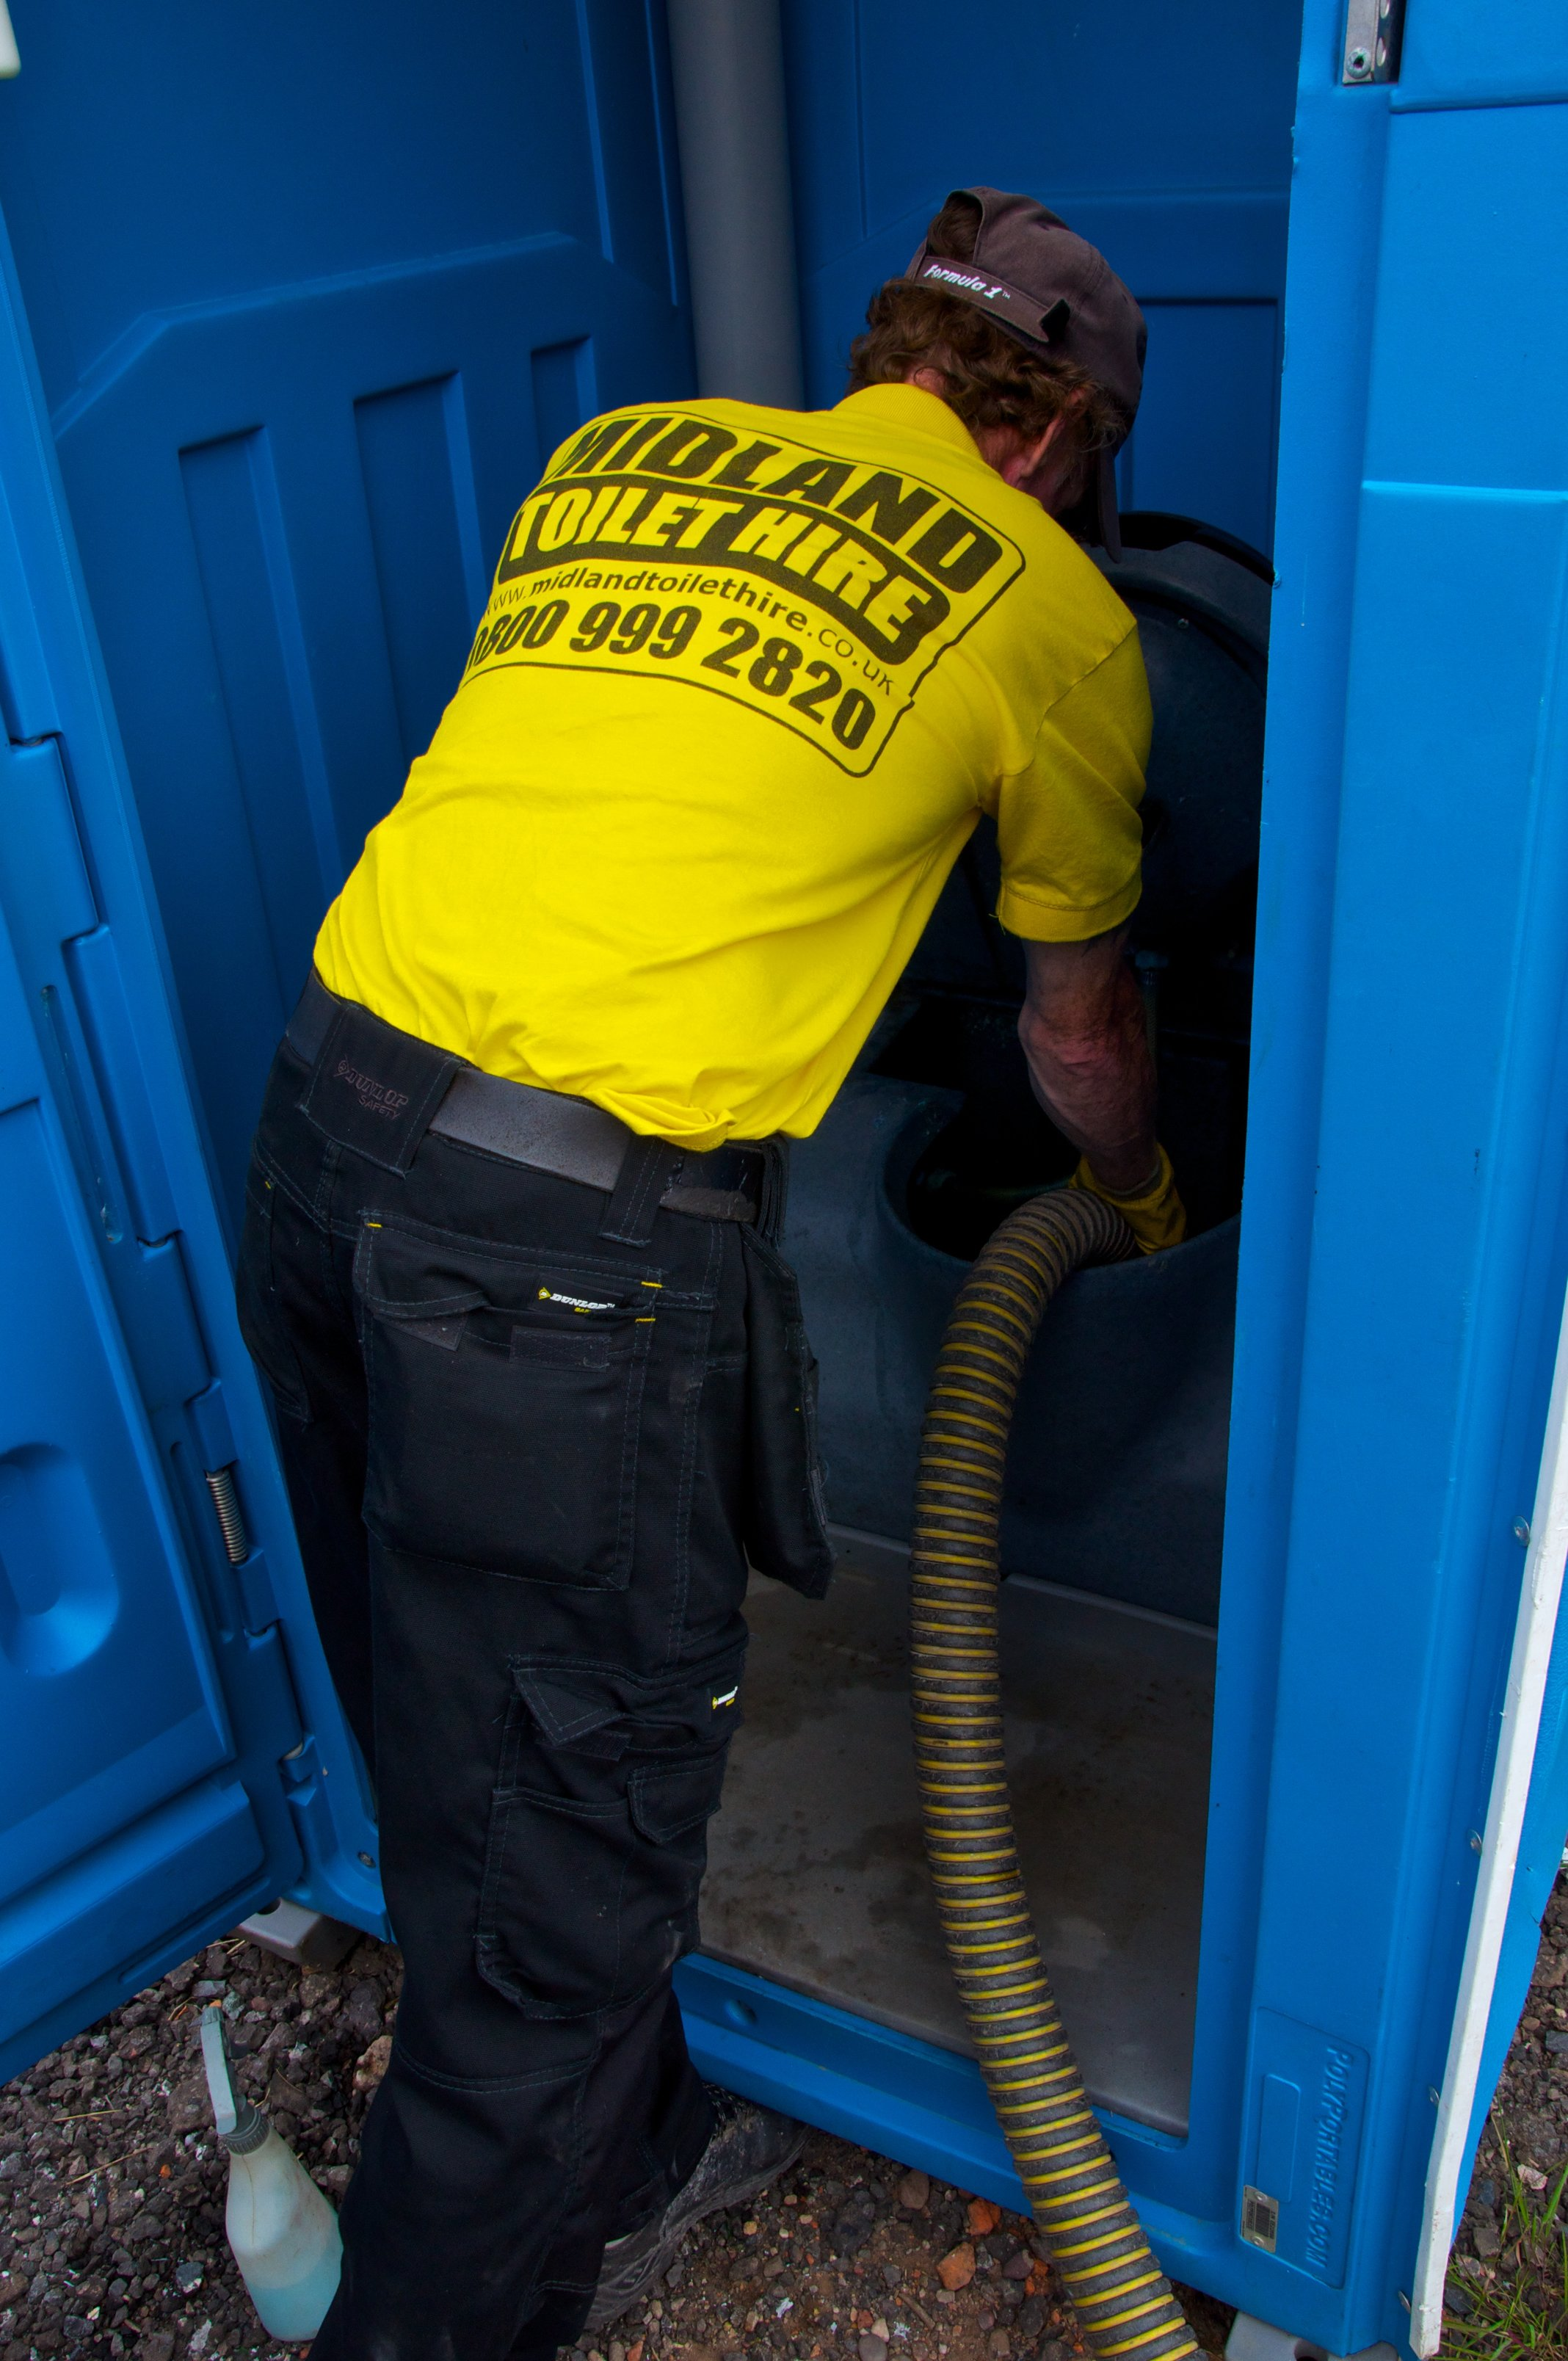 Midland Toilet Hire. Portable Toilet Hire Birmingham. Portable toilet hire Birmingham Loo hire Toilet hire Solihull, portable toilet on site Toilet hire West Midlands, need a toilet Toilet hire central Birmingham, Loo hire West Midlands Toilet hire Sutton Coldfield Toilet Hire Shirley Portable toilet hire Bromsgrove Toilet hire Harbourne